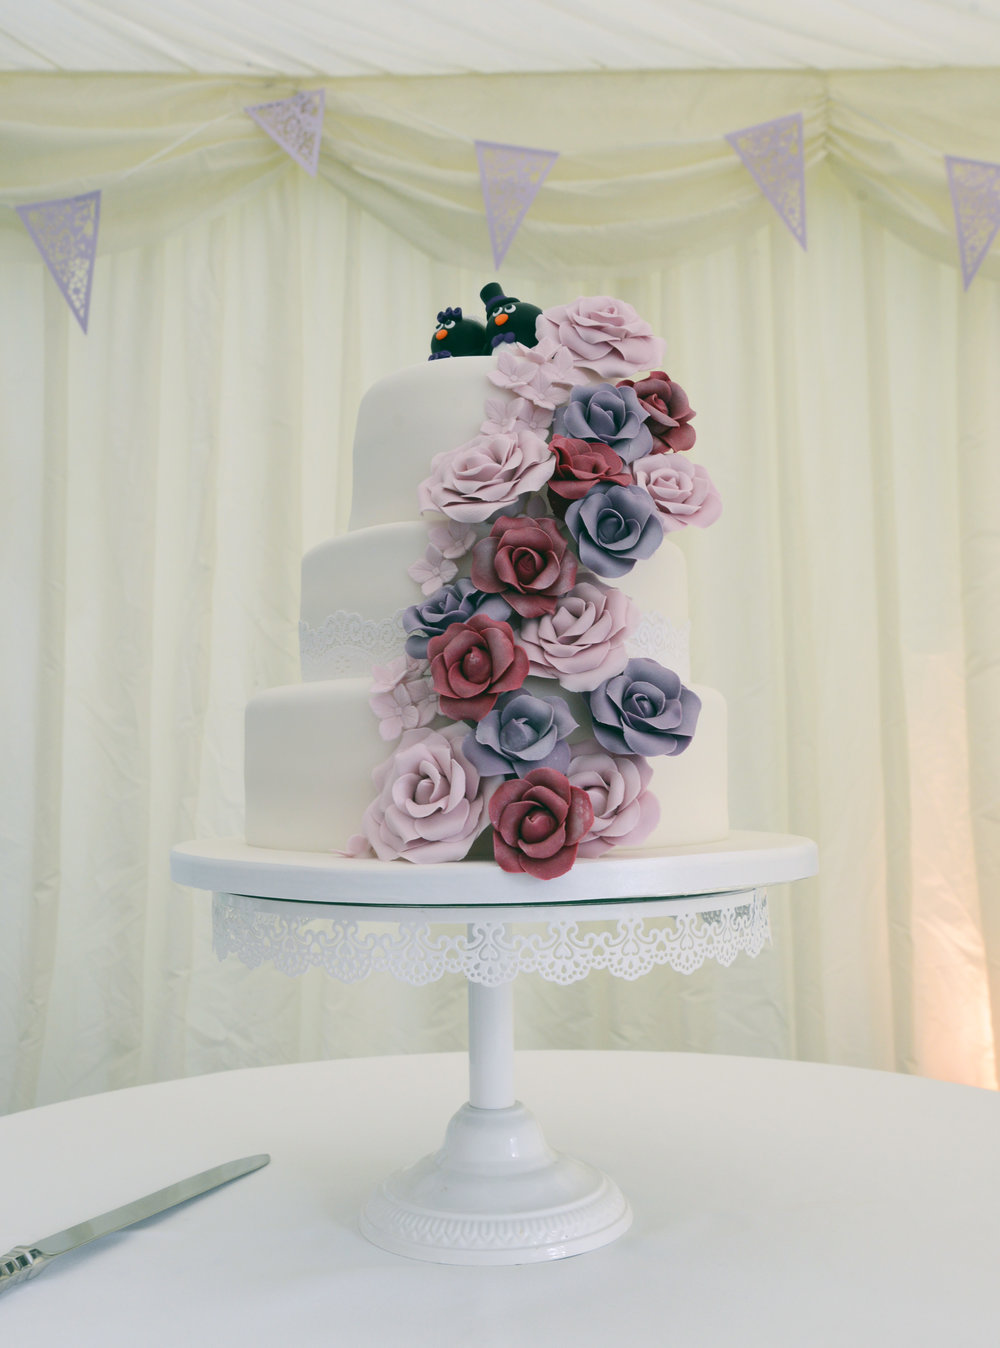 Posted - Cakes 2 copy 2.JPG